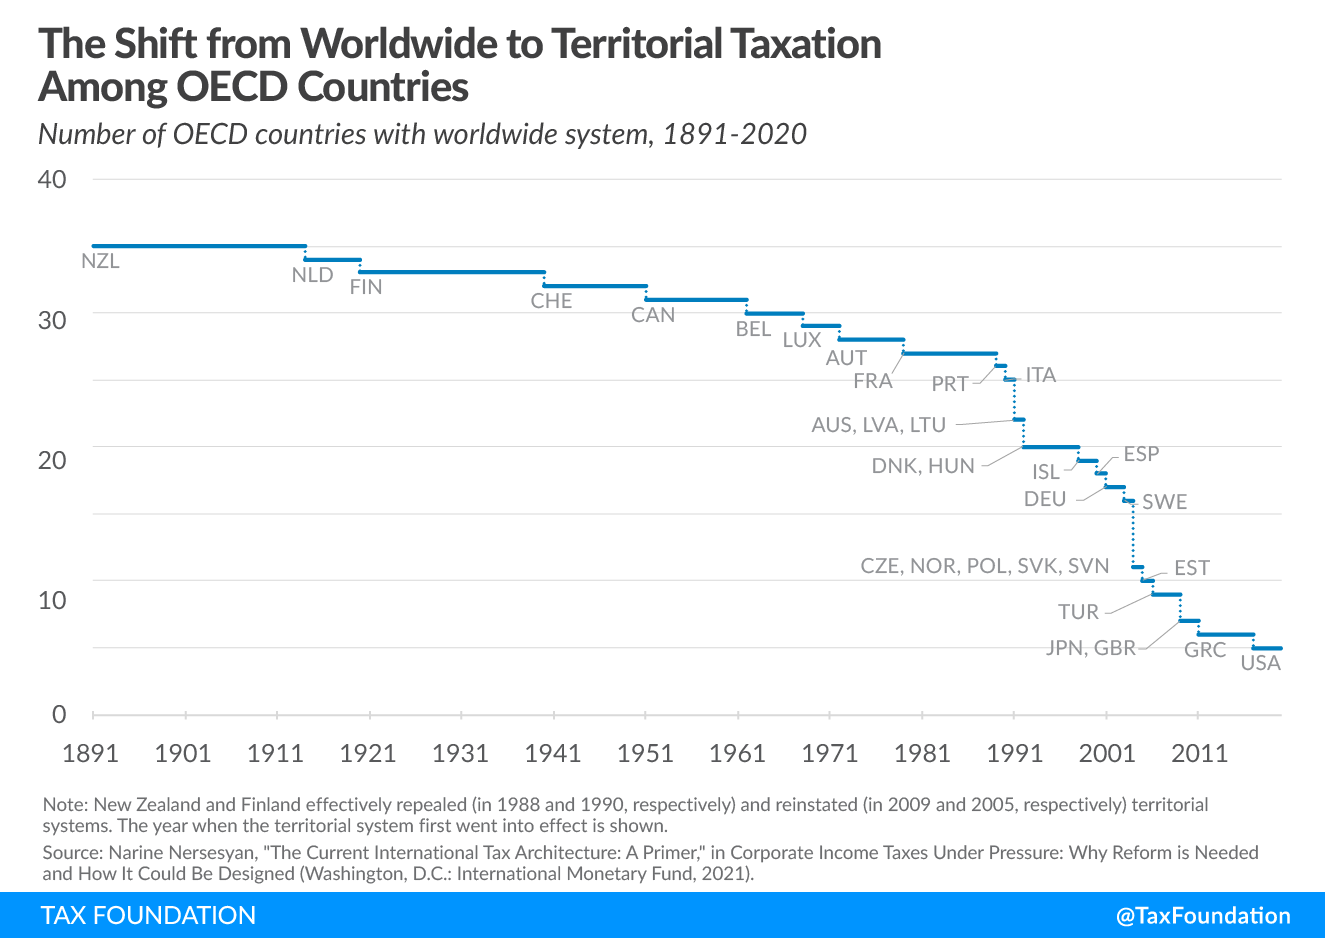 The Shift from Worldwide taxation to territorial taxation among OECD countries,Anti-Base Erosion Provisions and Territorial Tax Systems in OECD Countries